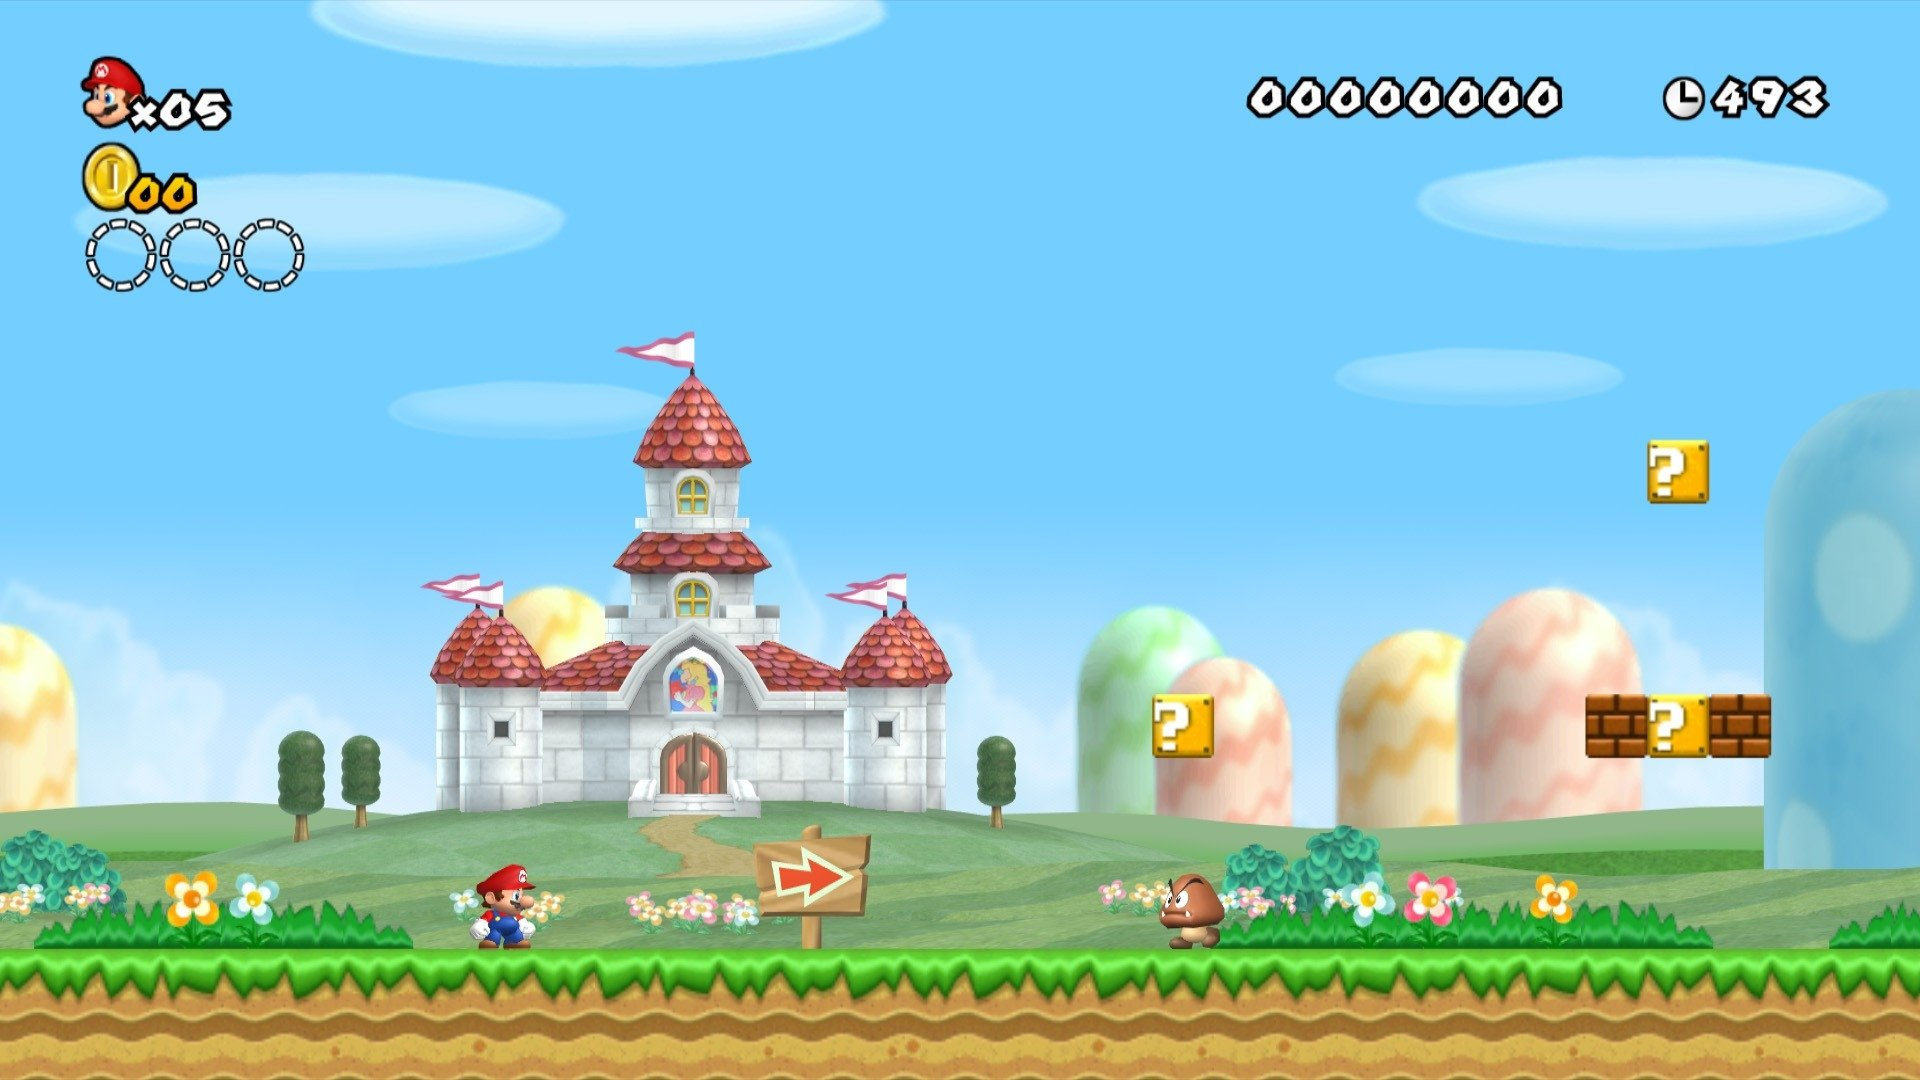 16 New Super Mario Bros Wii Hd Wallpapers Background Images